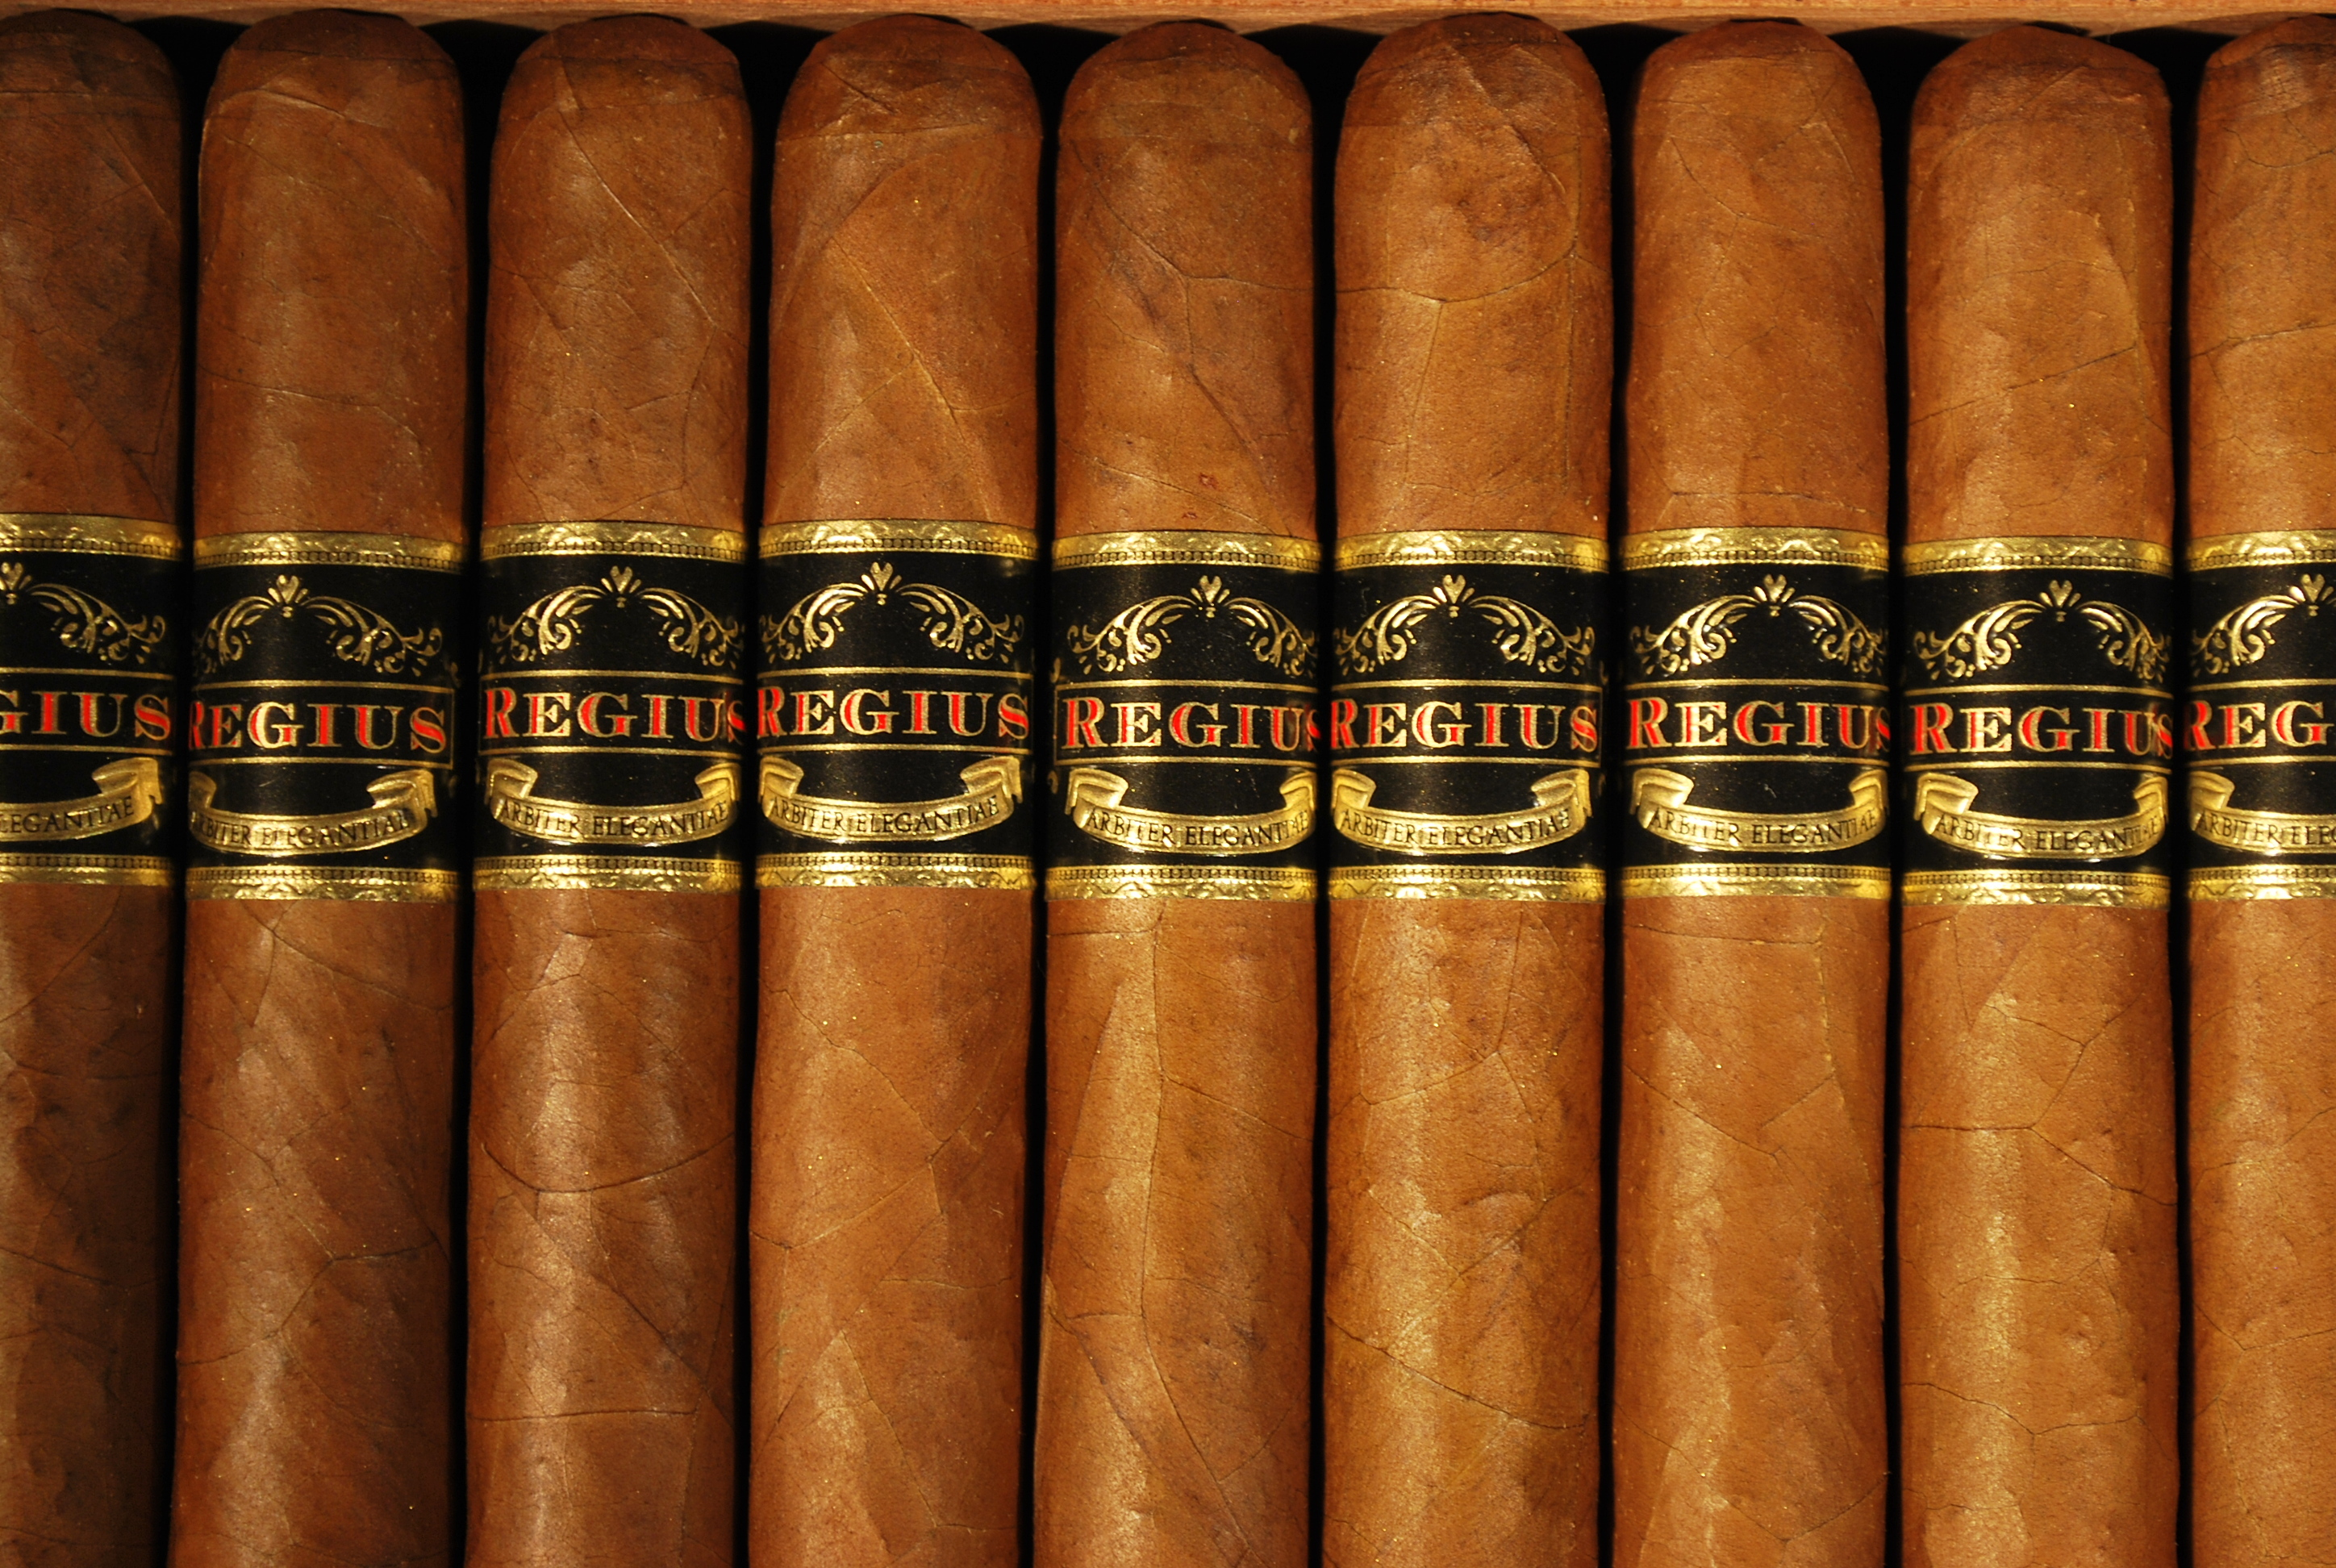 Wallpaper cigars cuba brown box label wallpapers textures 2896x1944